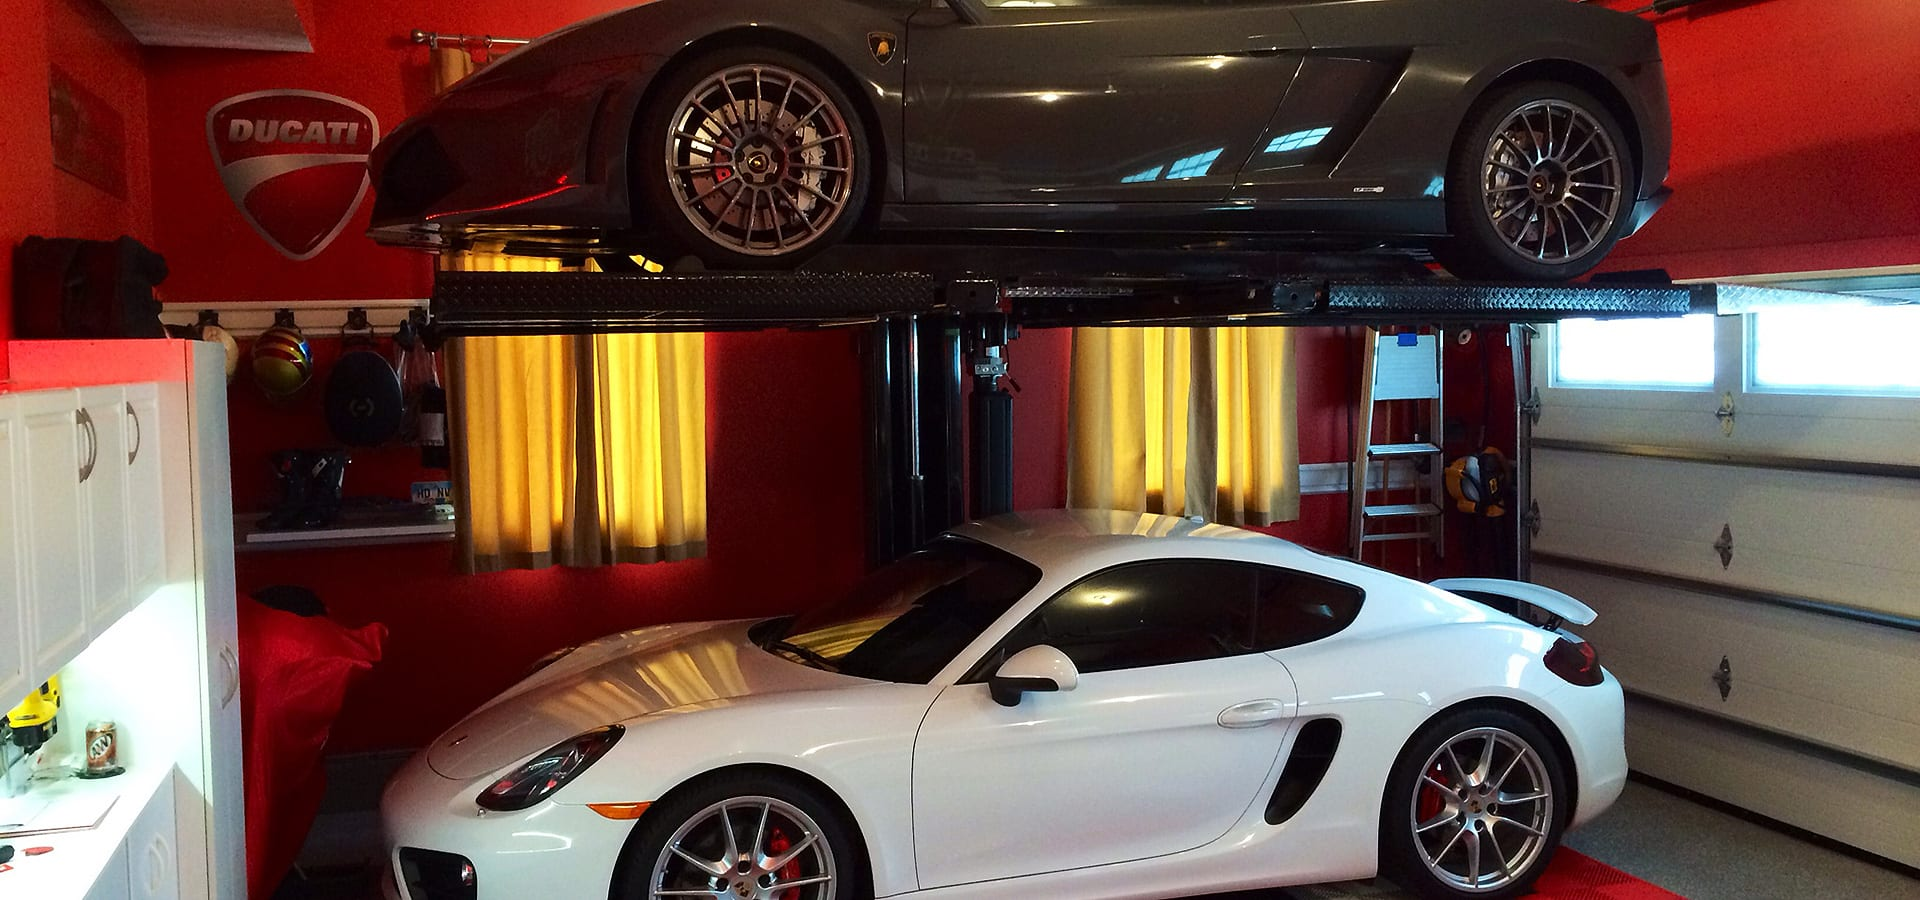 Residential Garage Car Lift. Fine Garage Residential Garage Lift In on residential outdoor elevators lifts, parking lot car lifts, automotive garage lifts, double car lifts, black car lifts, home car lifts, residential scissor lift, automotive car lifts, bear car lifts, hydraulic door lifts, commercial car lifts, in ground single post lifts, blueprints 2 post car lifts, affordable car lifts, 4 post car lifts, race car pit lifts, triple car lifts, atlas lifts, low rise car lifts, best car lifts,